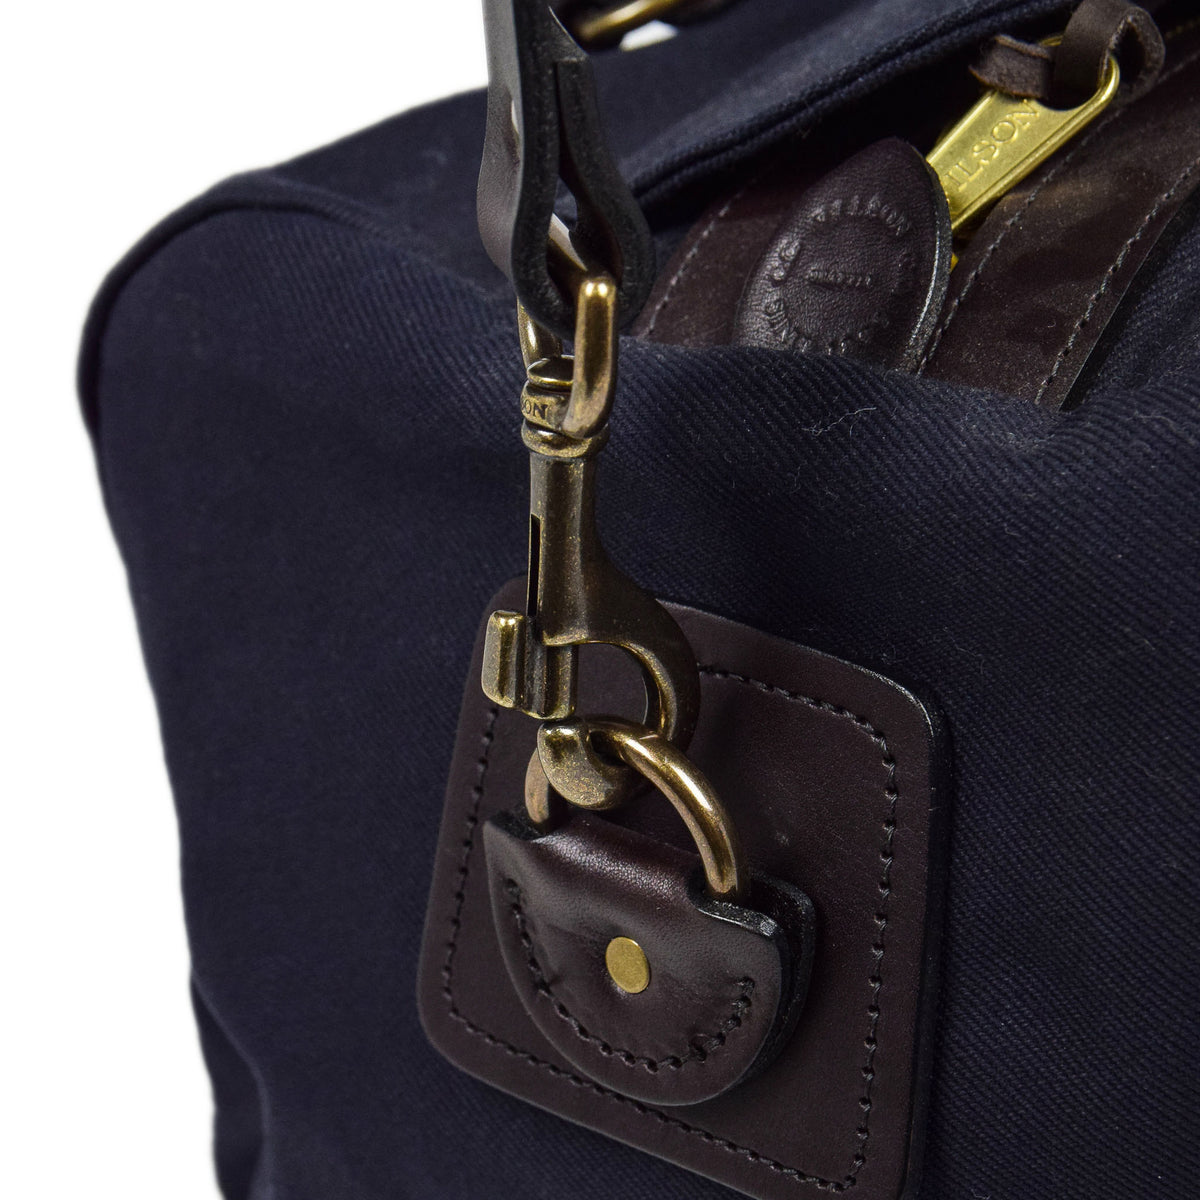 Filson Rugged Twill Carry-On Duffle Bag Navy Strap Attachment